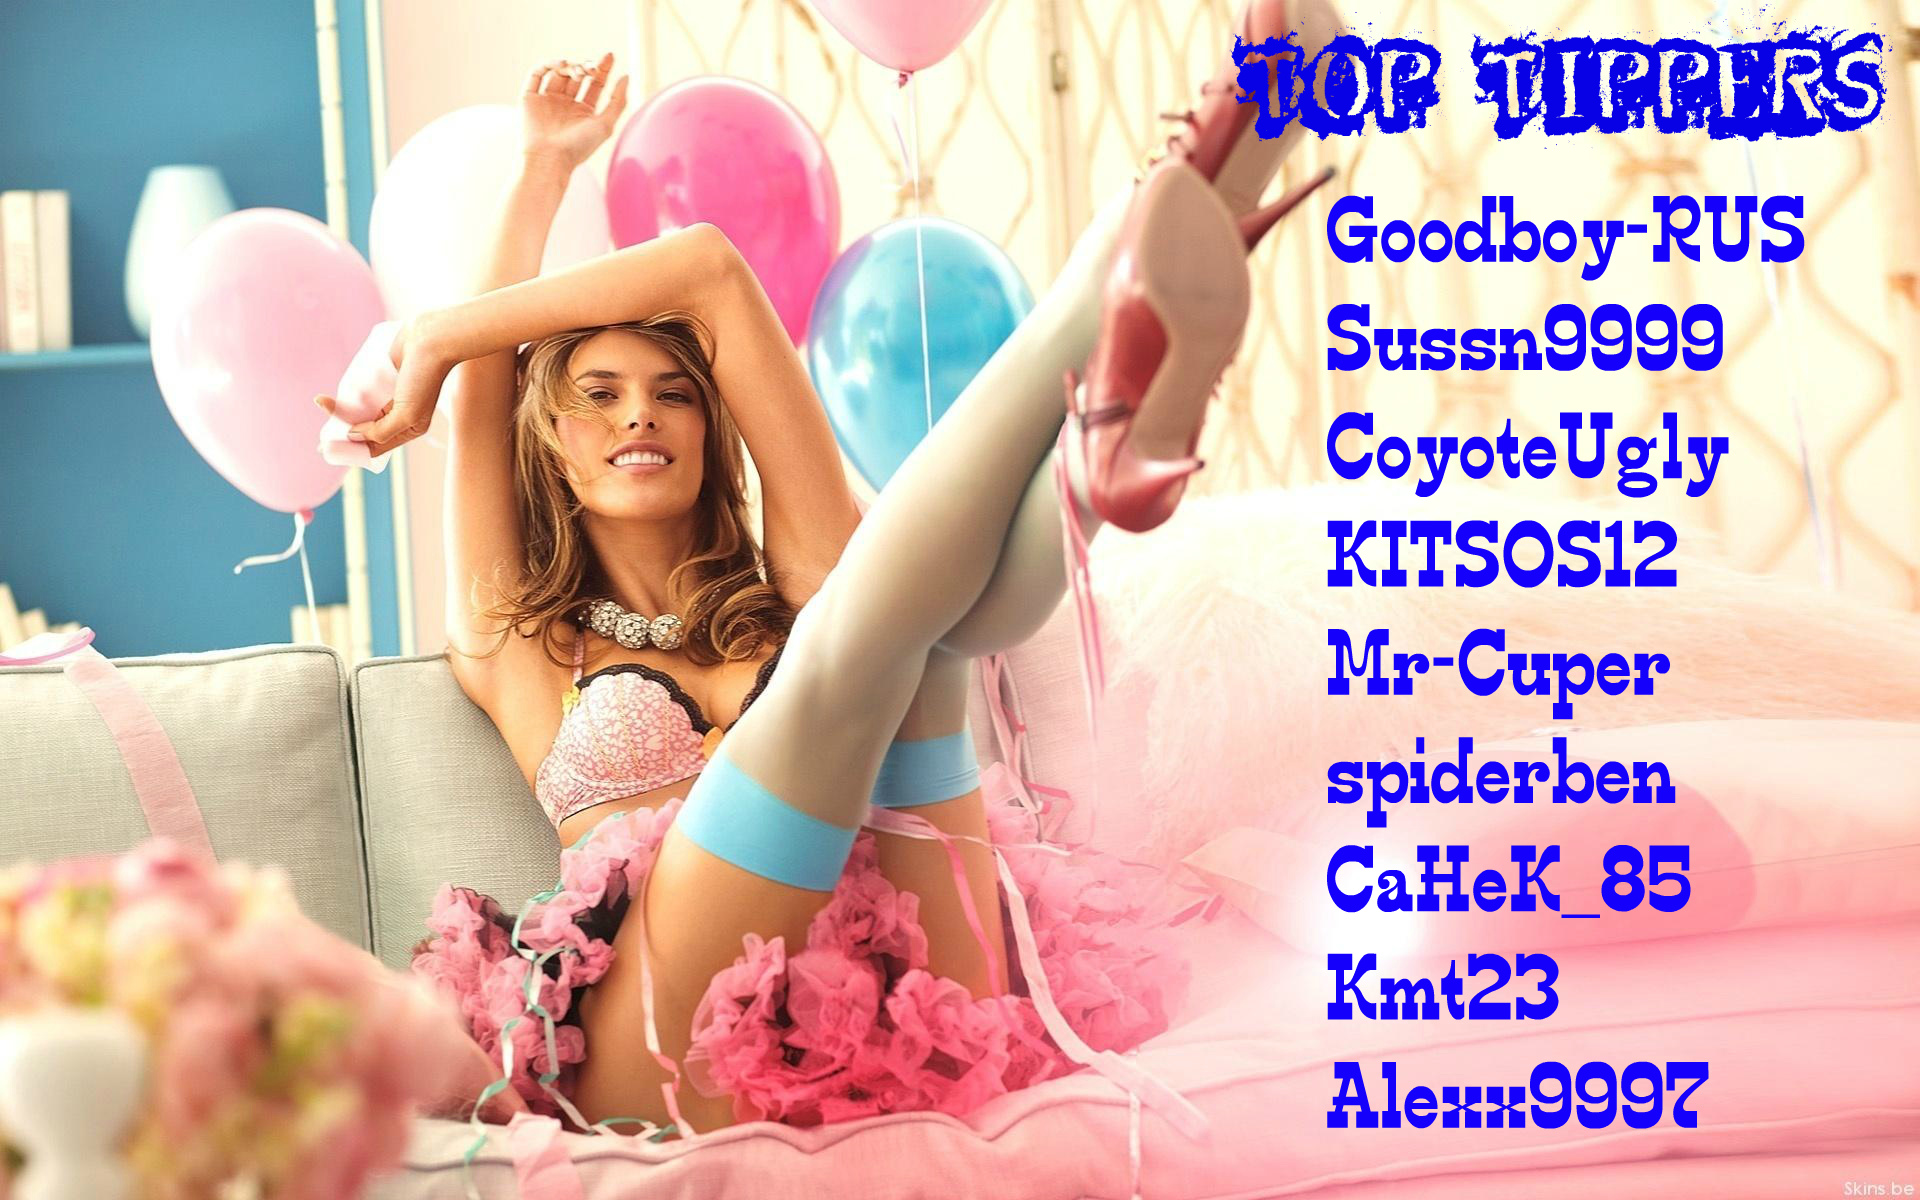 twitters TOP TIPPERS custom pic 1